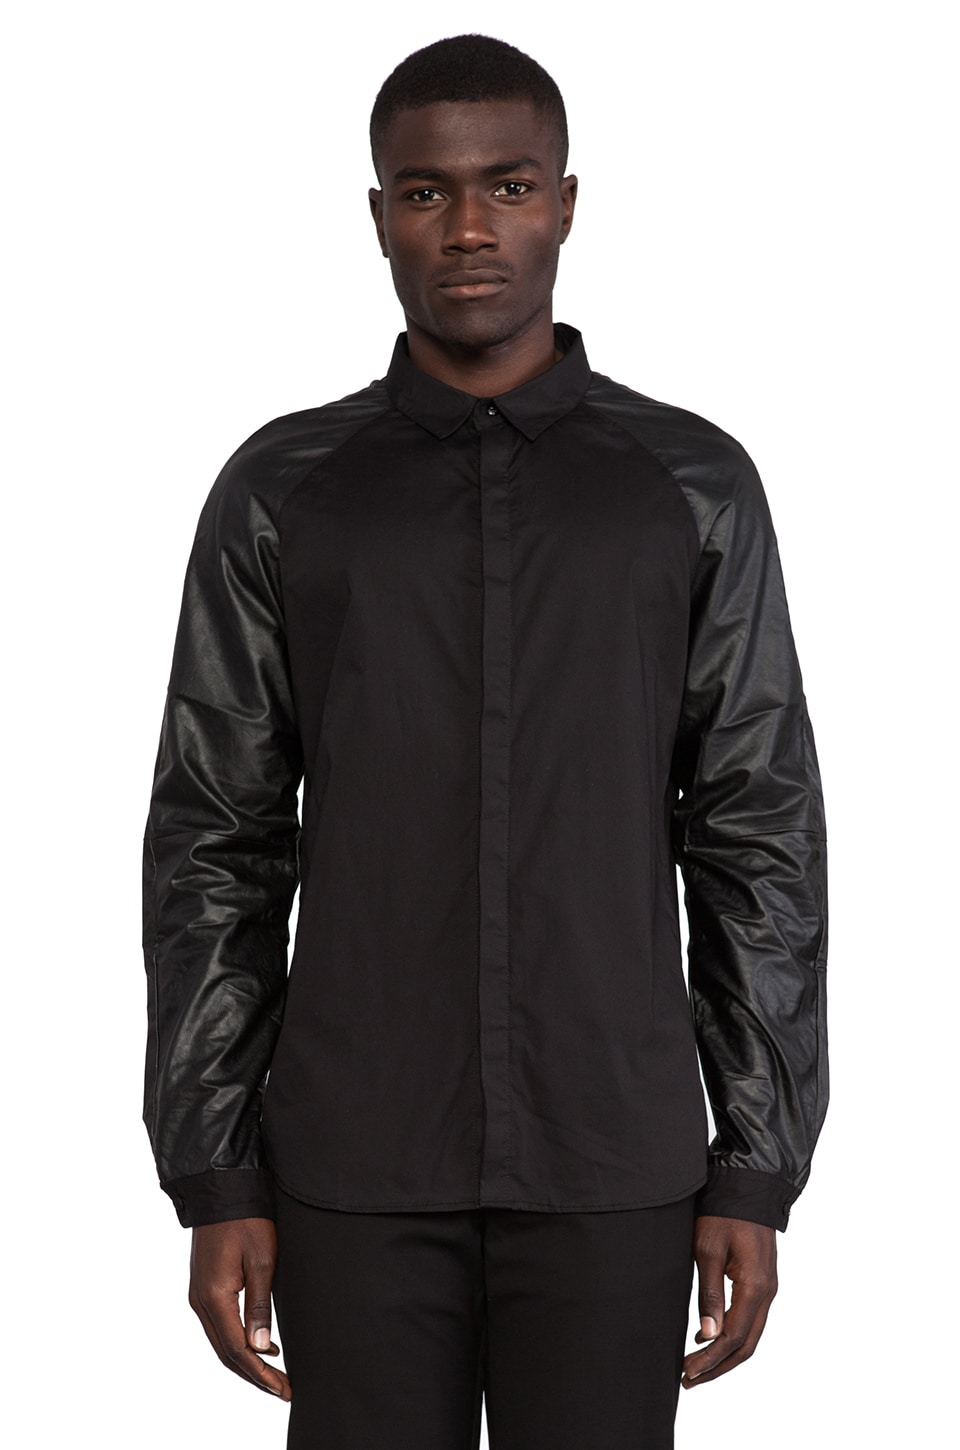 Sons of Heroes Damaged Goods Faux Leather Sleeved Shirt in Black